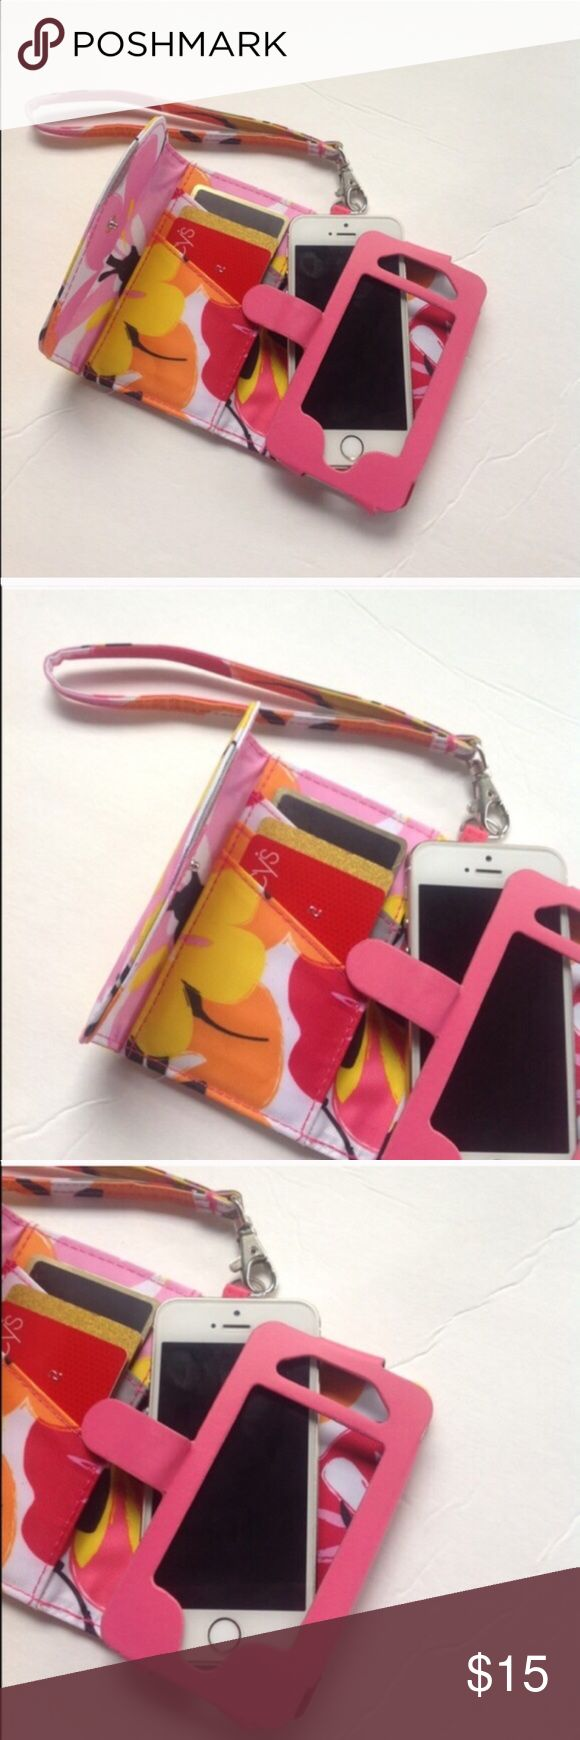 📛iPhone 4 wallet case Preloved iPhone 4 wallet wristlet Accessories Phone Cases